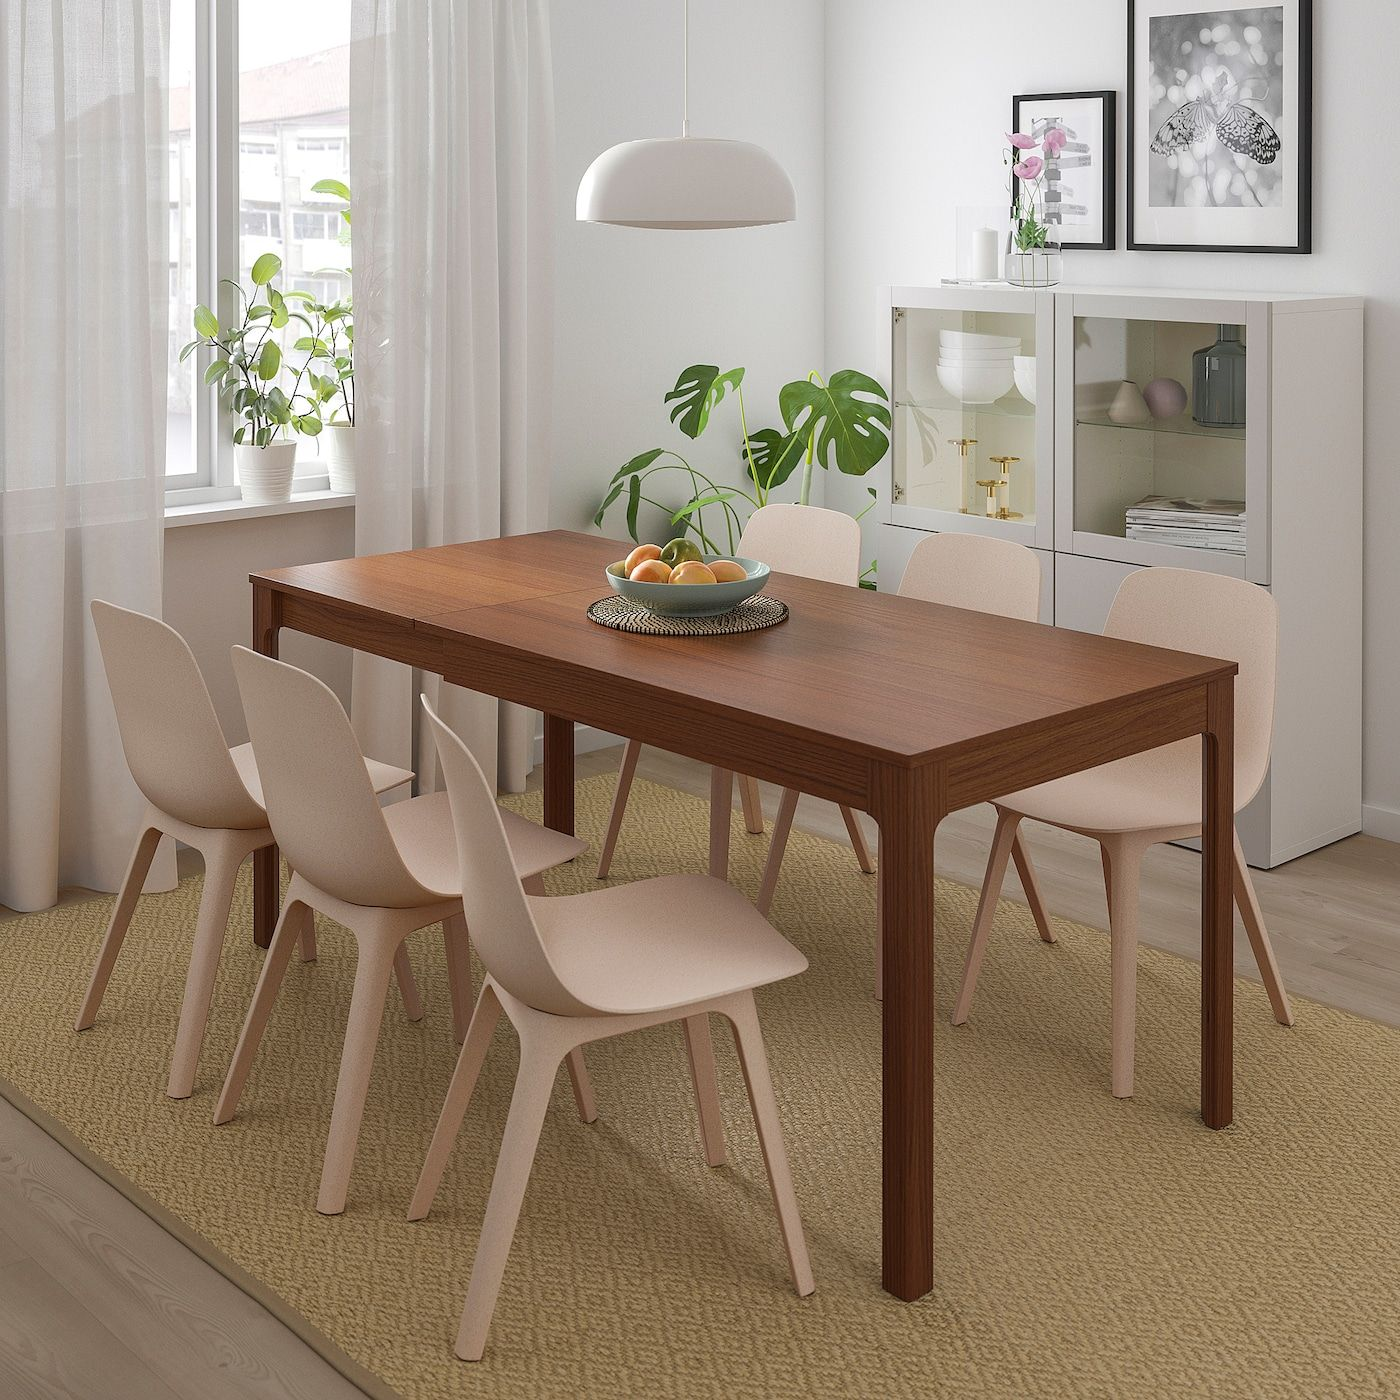 EKEDALEN / ODGER Table and 4 chairs brown, white beige